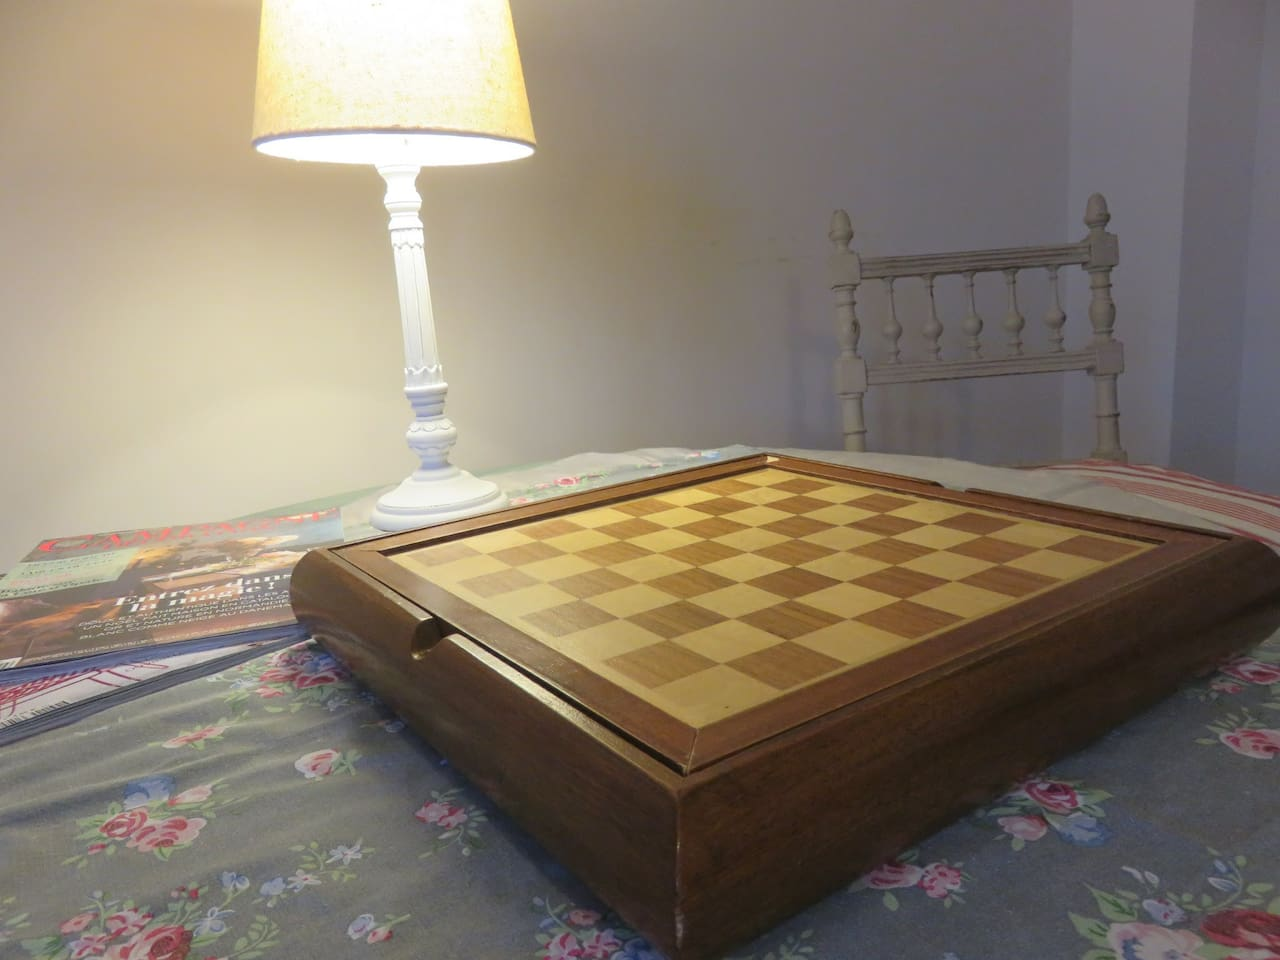 Fancy a game of chess?